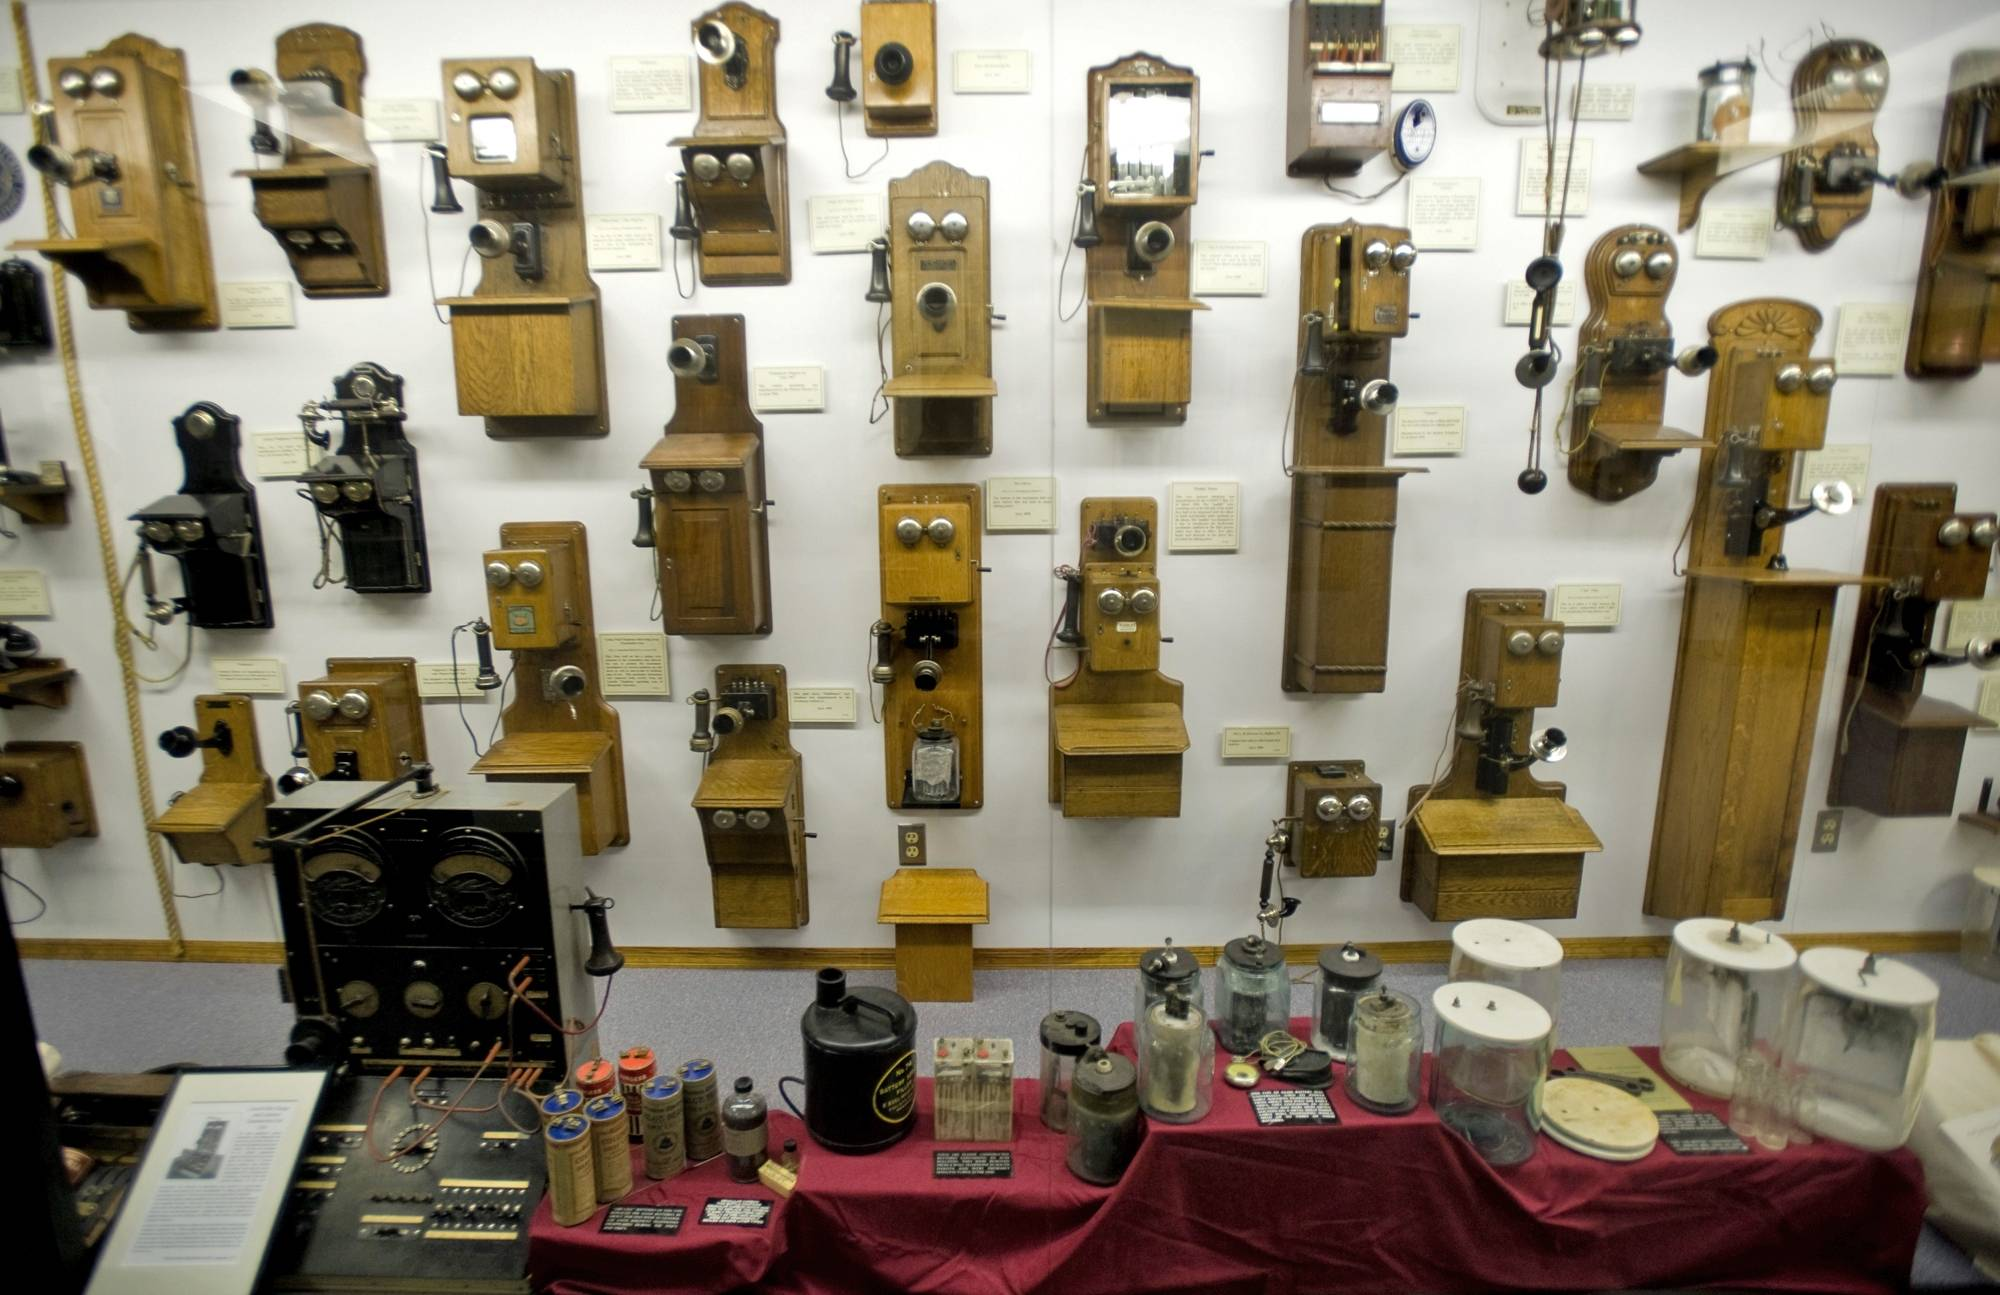 Visitors can see antique telephones and more at the Frank H. Woods Telephone Museum in Lincoln, Neb.